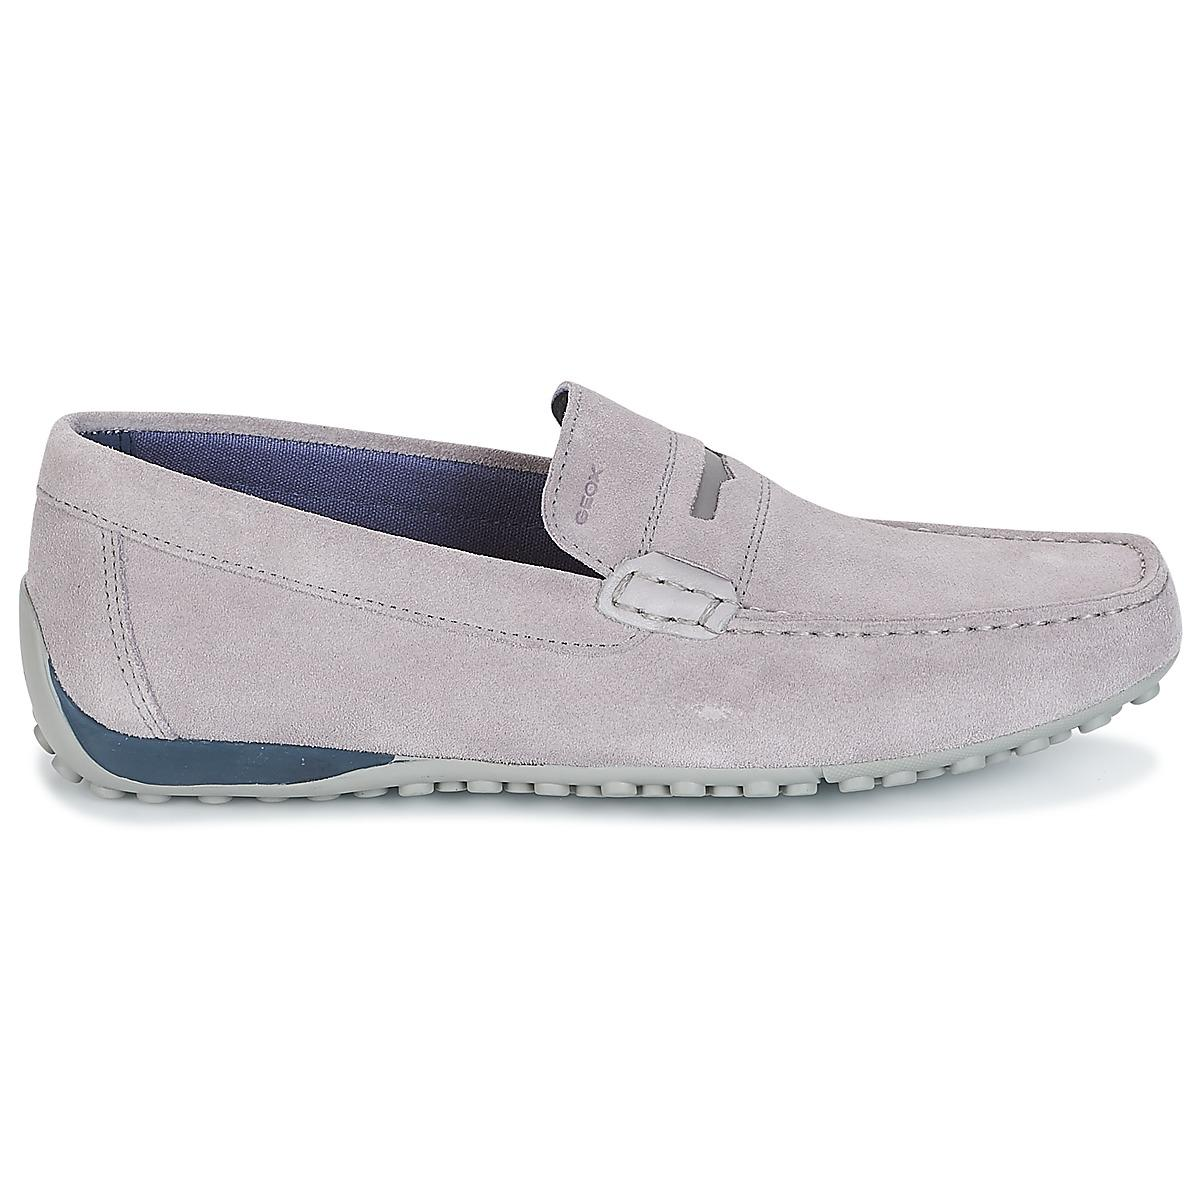 Geox - Gray Snake Moc A Men s Loafers   Casual Shoes In Grey for Men -.  View fullscreen 57fe09140bb2